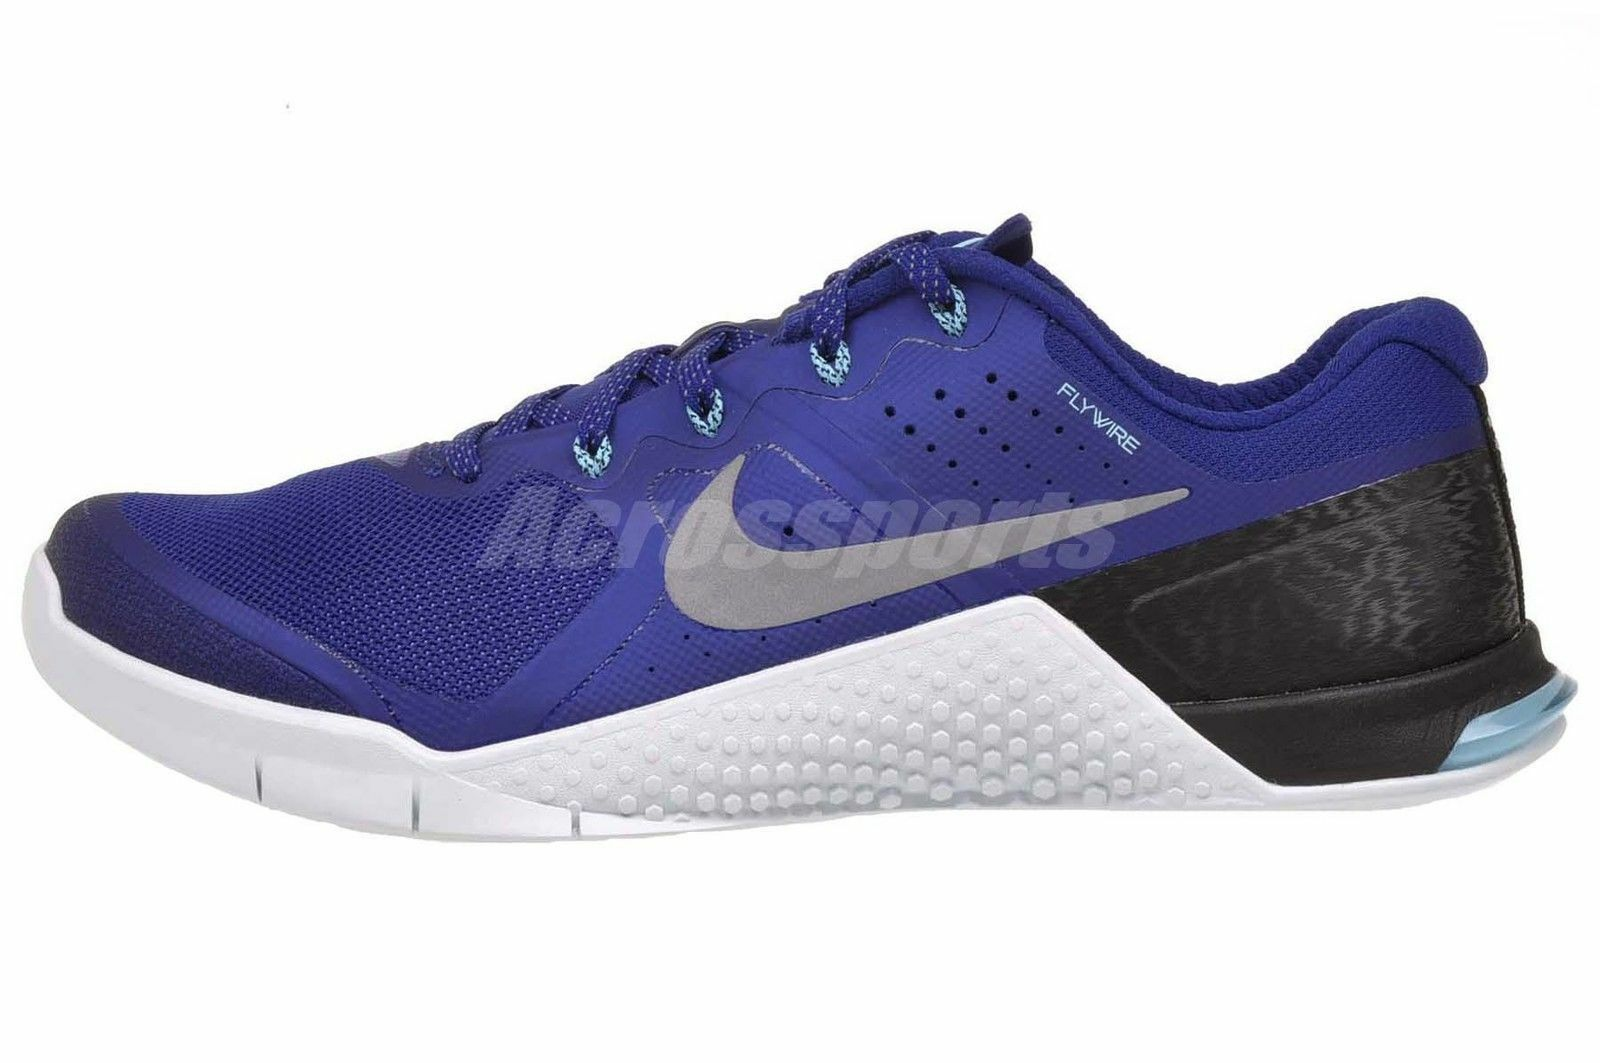 Nike Amp Metcon 2 Amp Nike Holiday Mens Cross Training Shoes  835438-404 SIZE 13 c15504